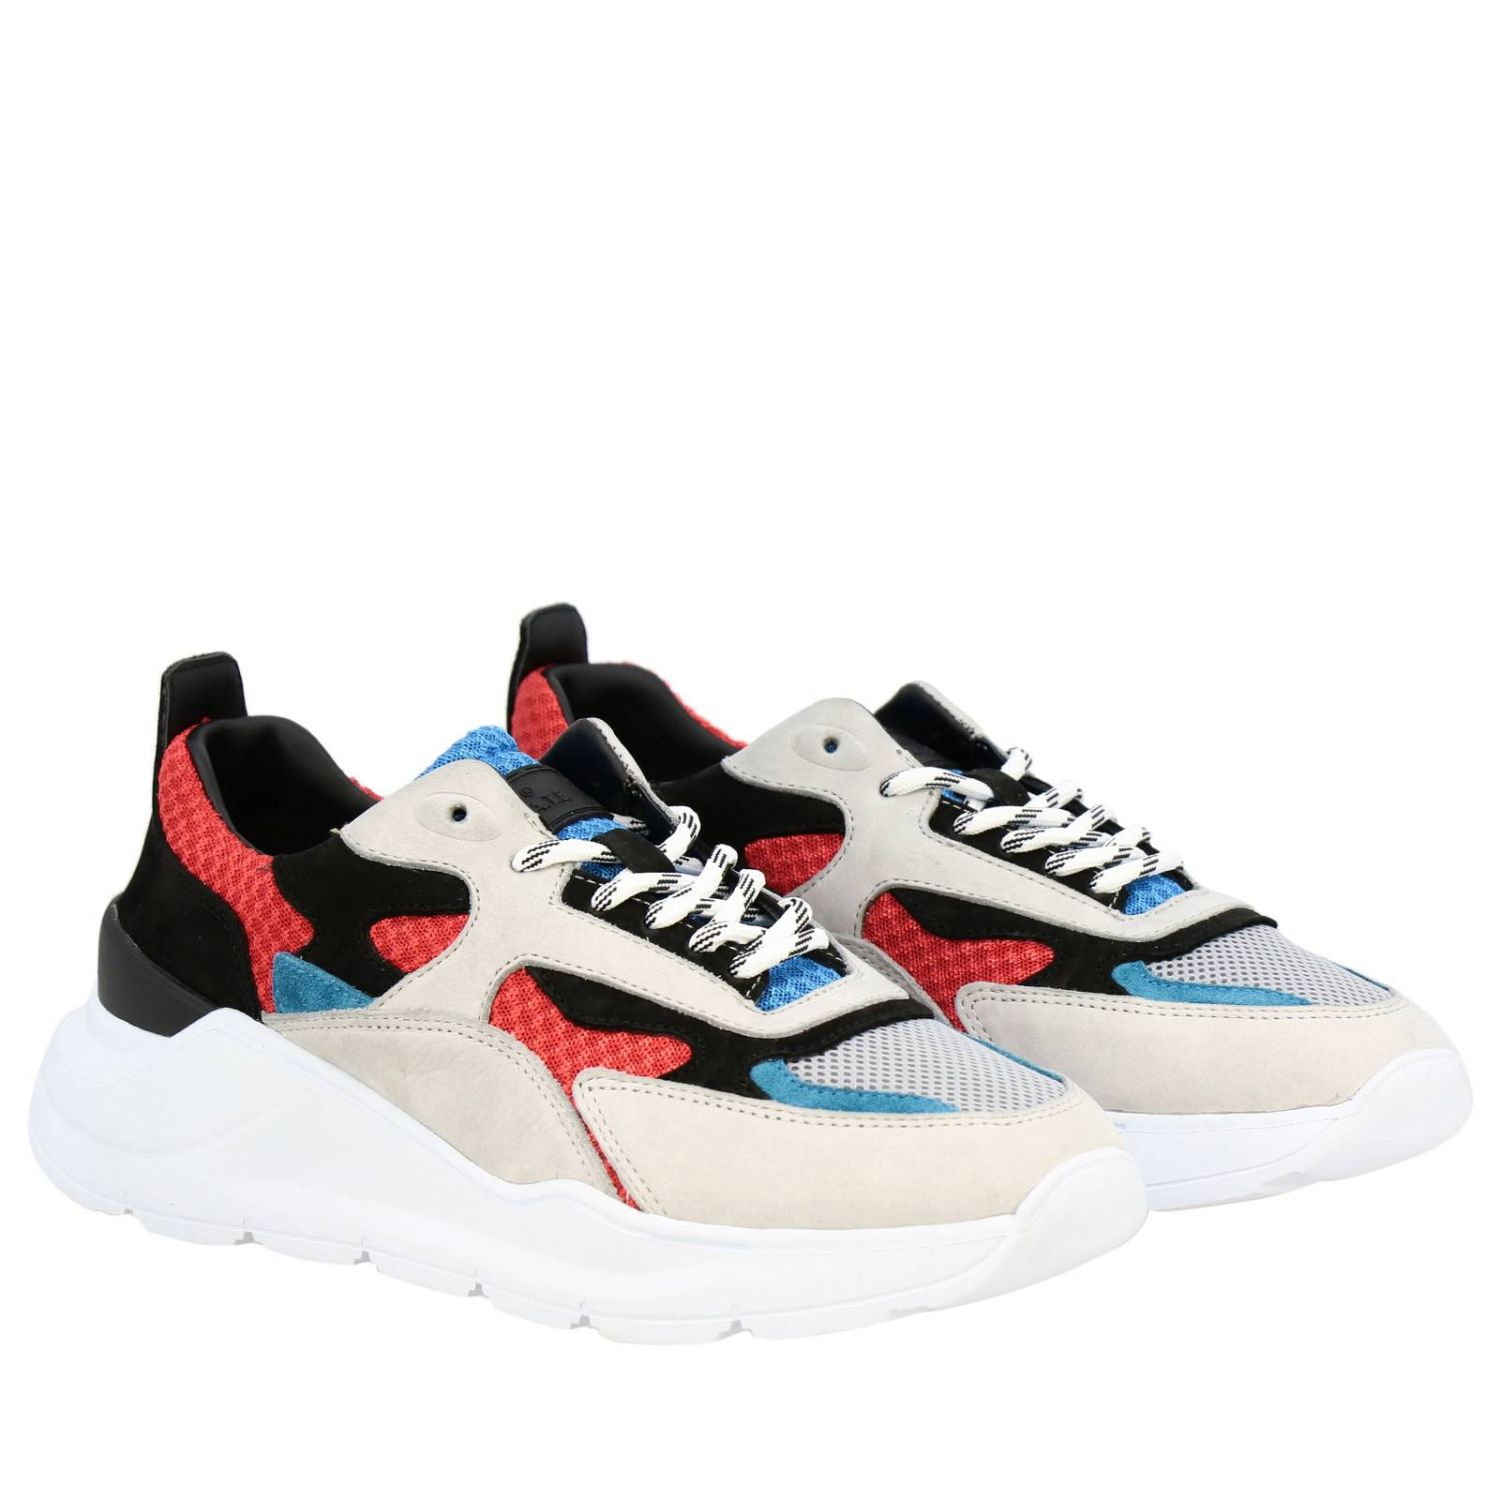 Chaussures homme D.a.t.e. rouge 2